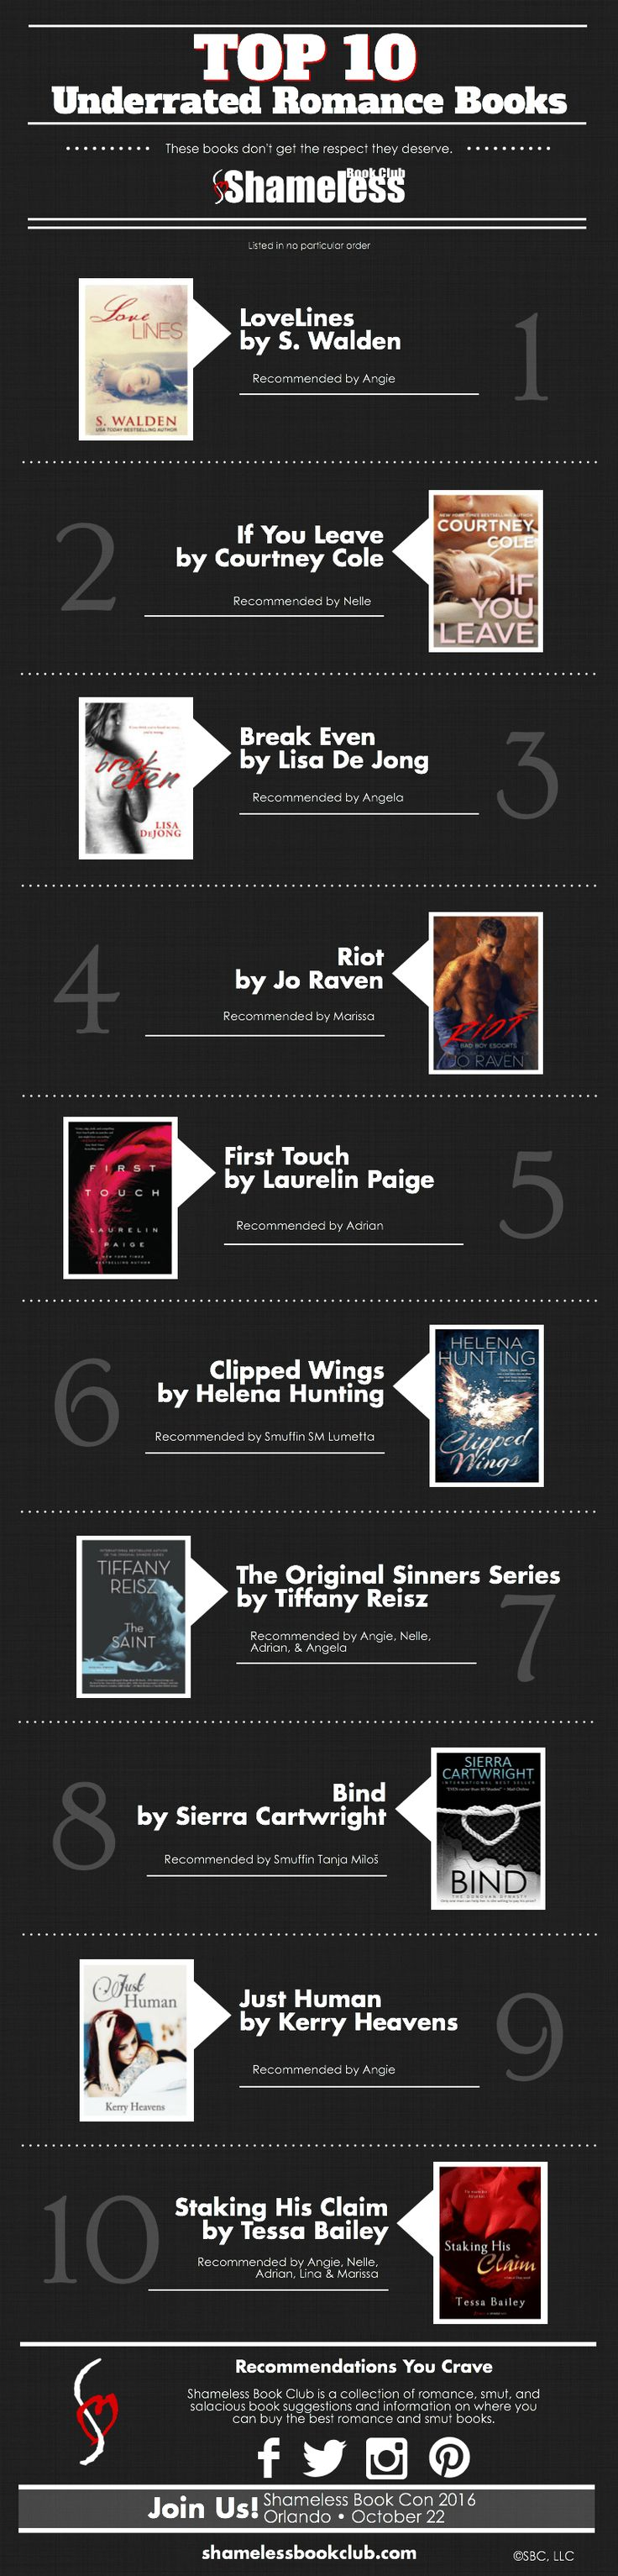 Top 10 Underrated Romance Books According to Shameless Book Club http://shamelessbookclub.com/book-news/top-10-underrated-romance-books/